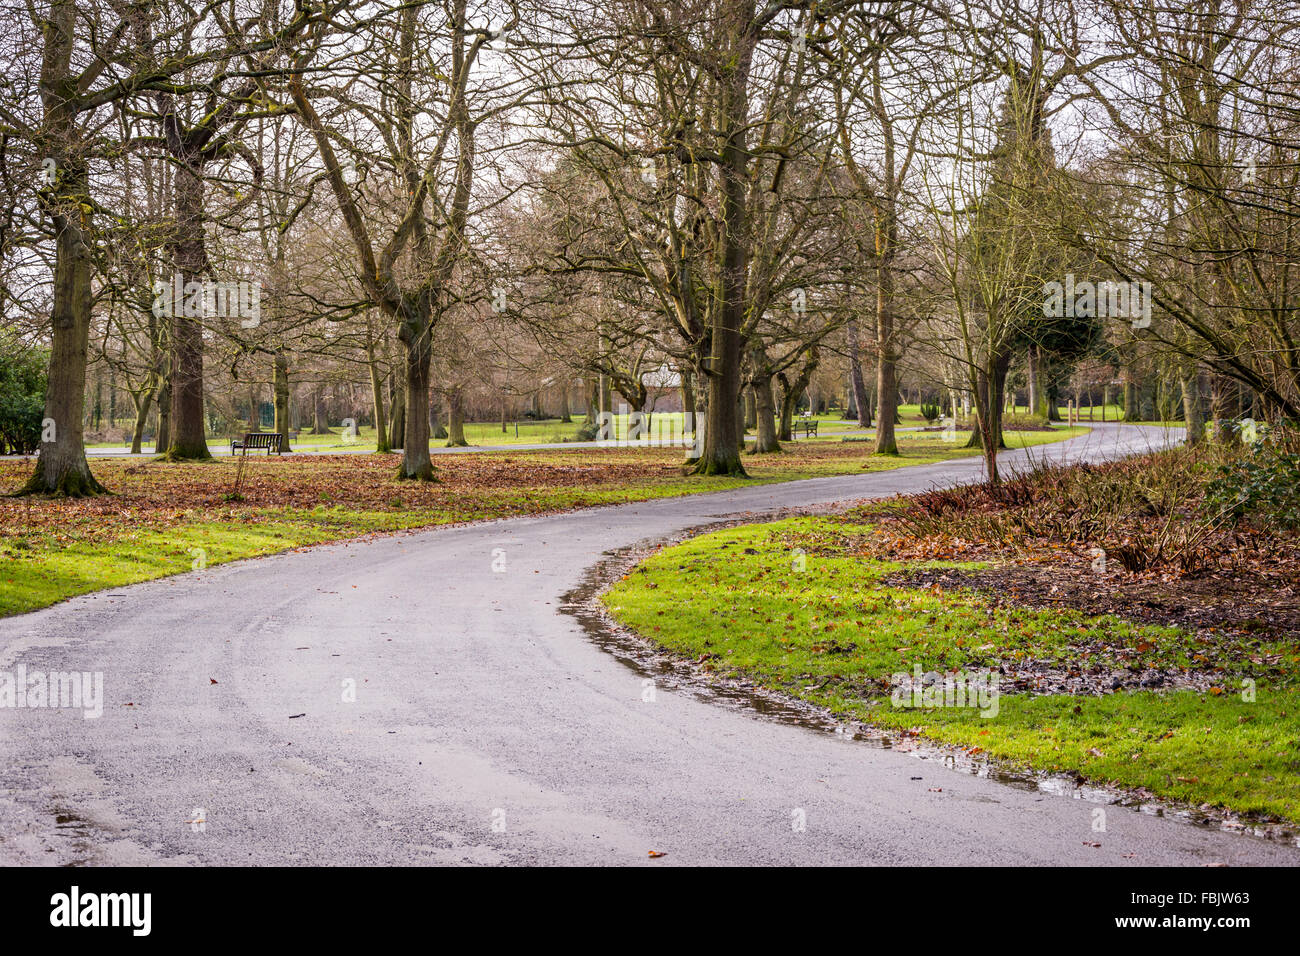 Winding Path In City Park Stock Photos & Winding Path In City Park ...